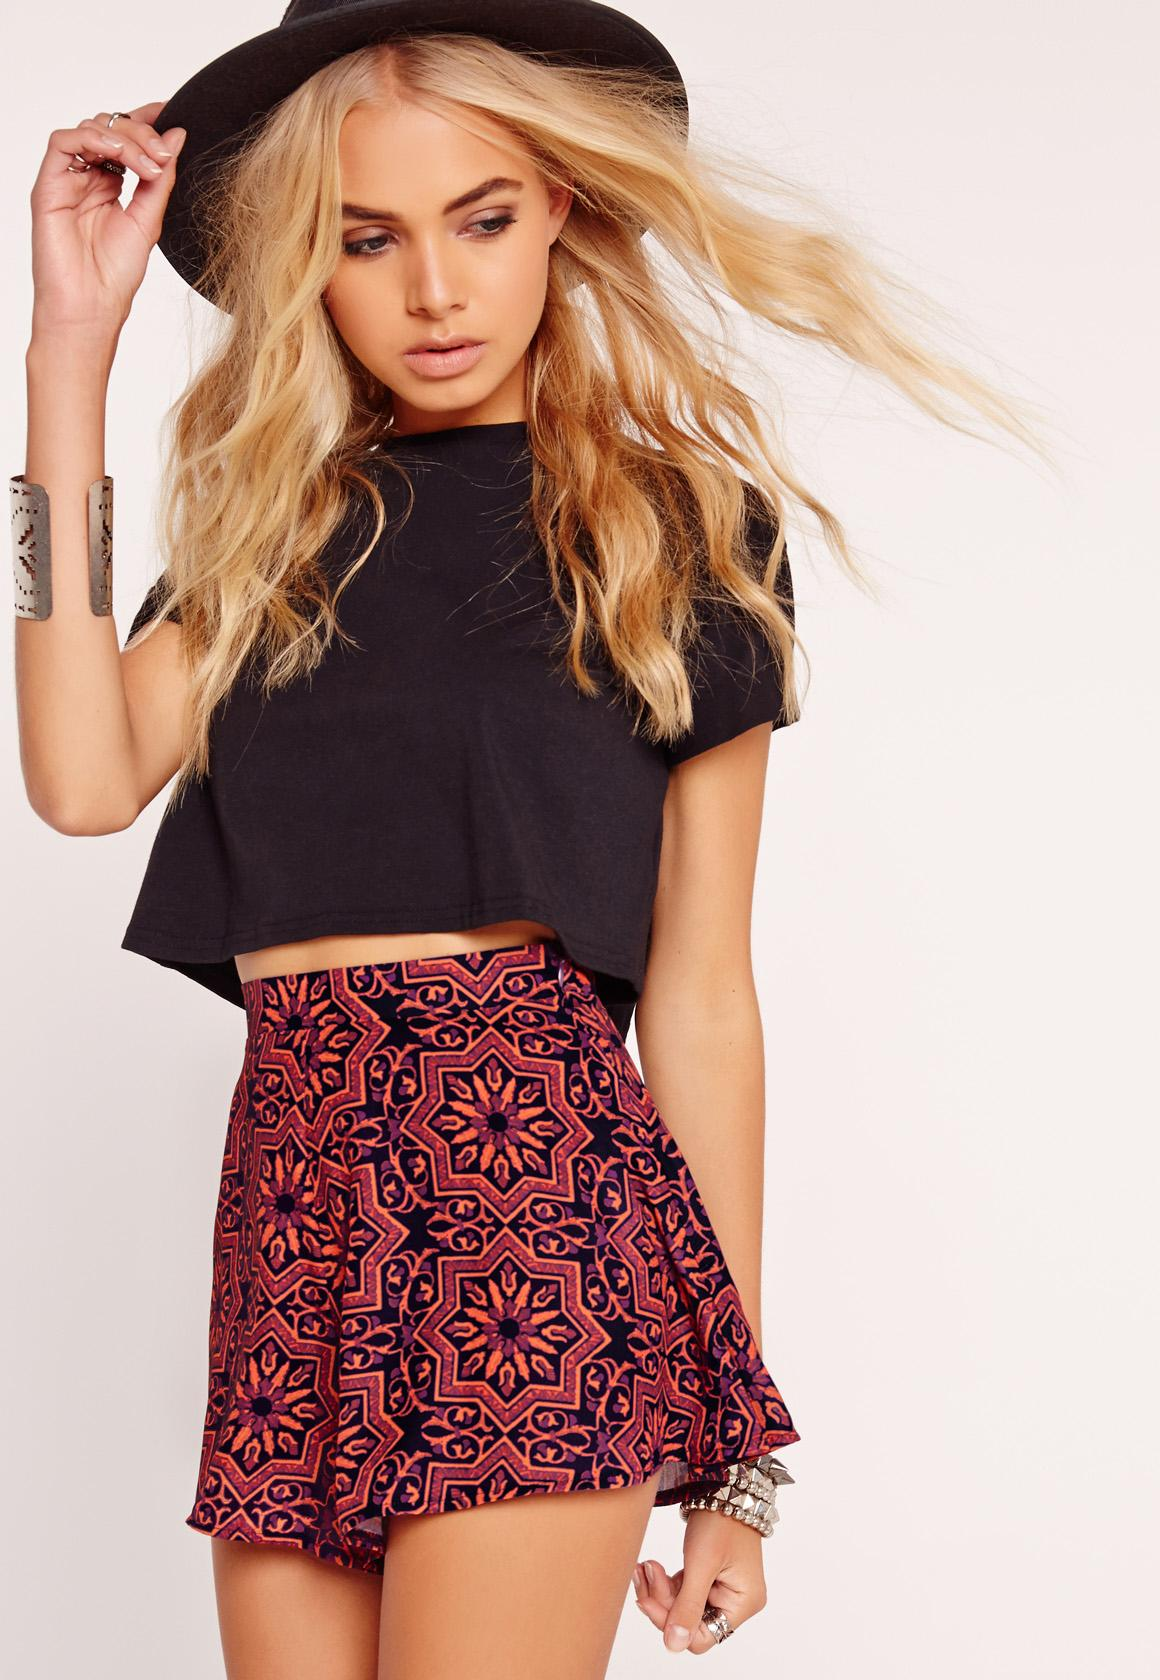 Floral Print Shorts - Multi Missguided Jjz4b5vsg